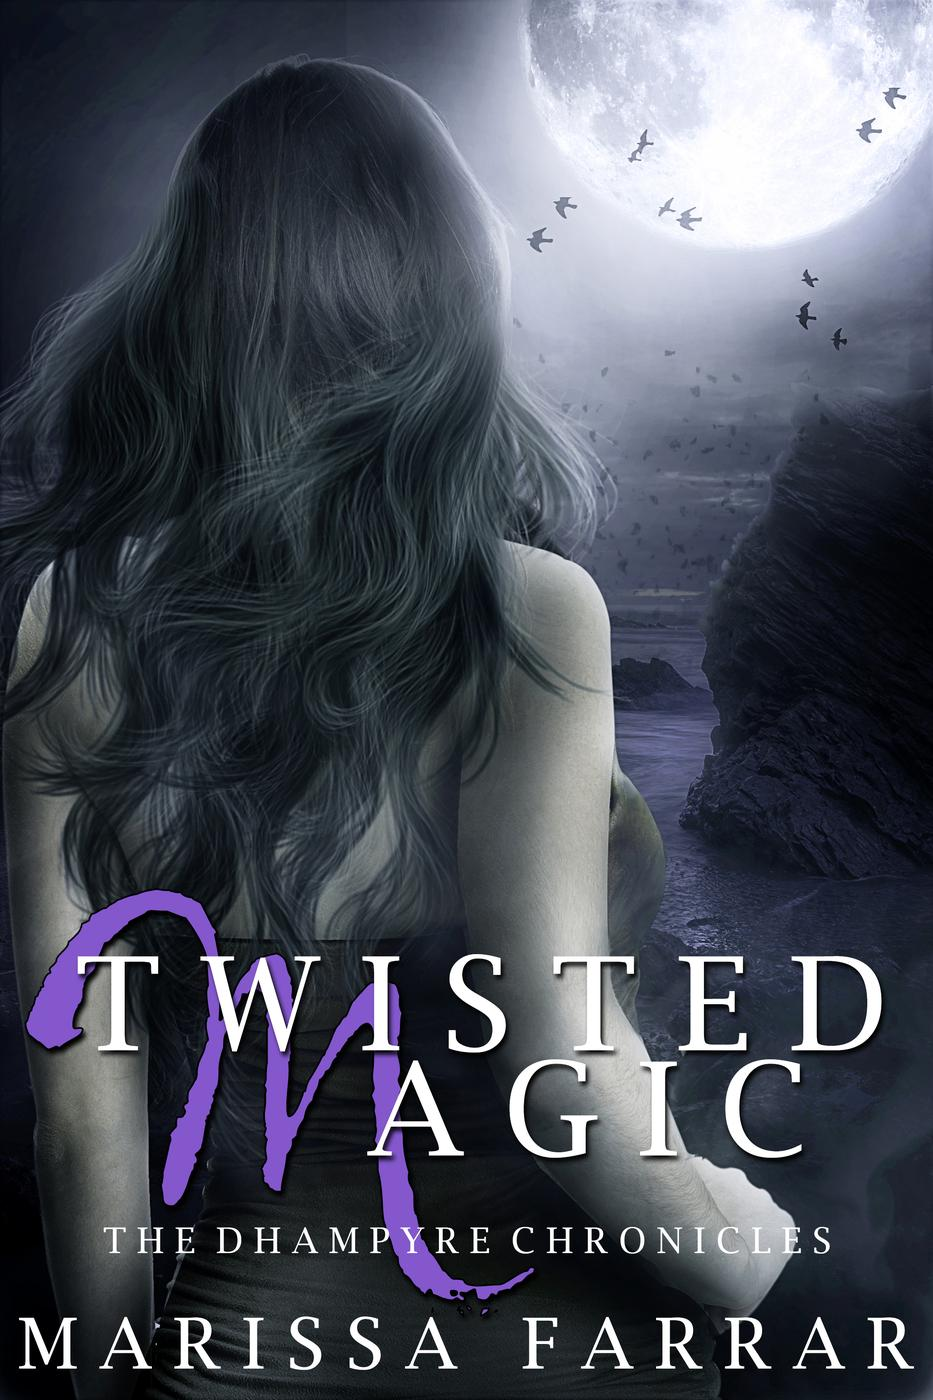 Book Review for No Twisted Magic by Marissa Farrar